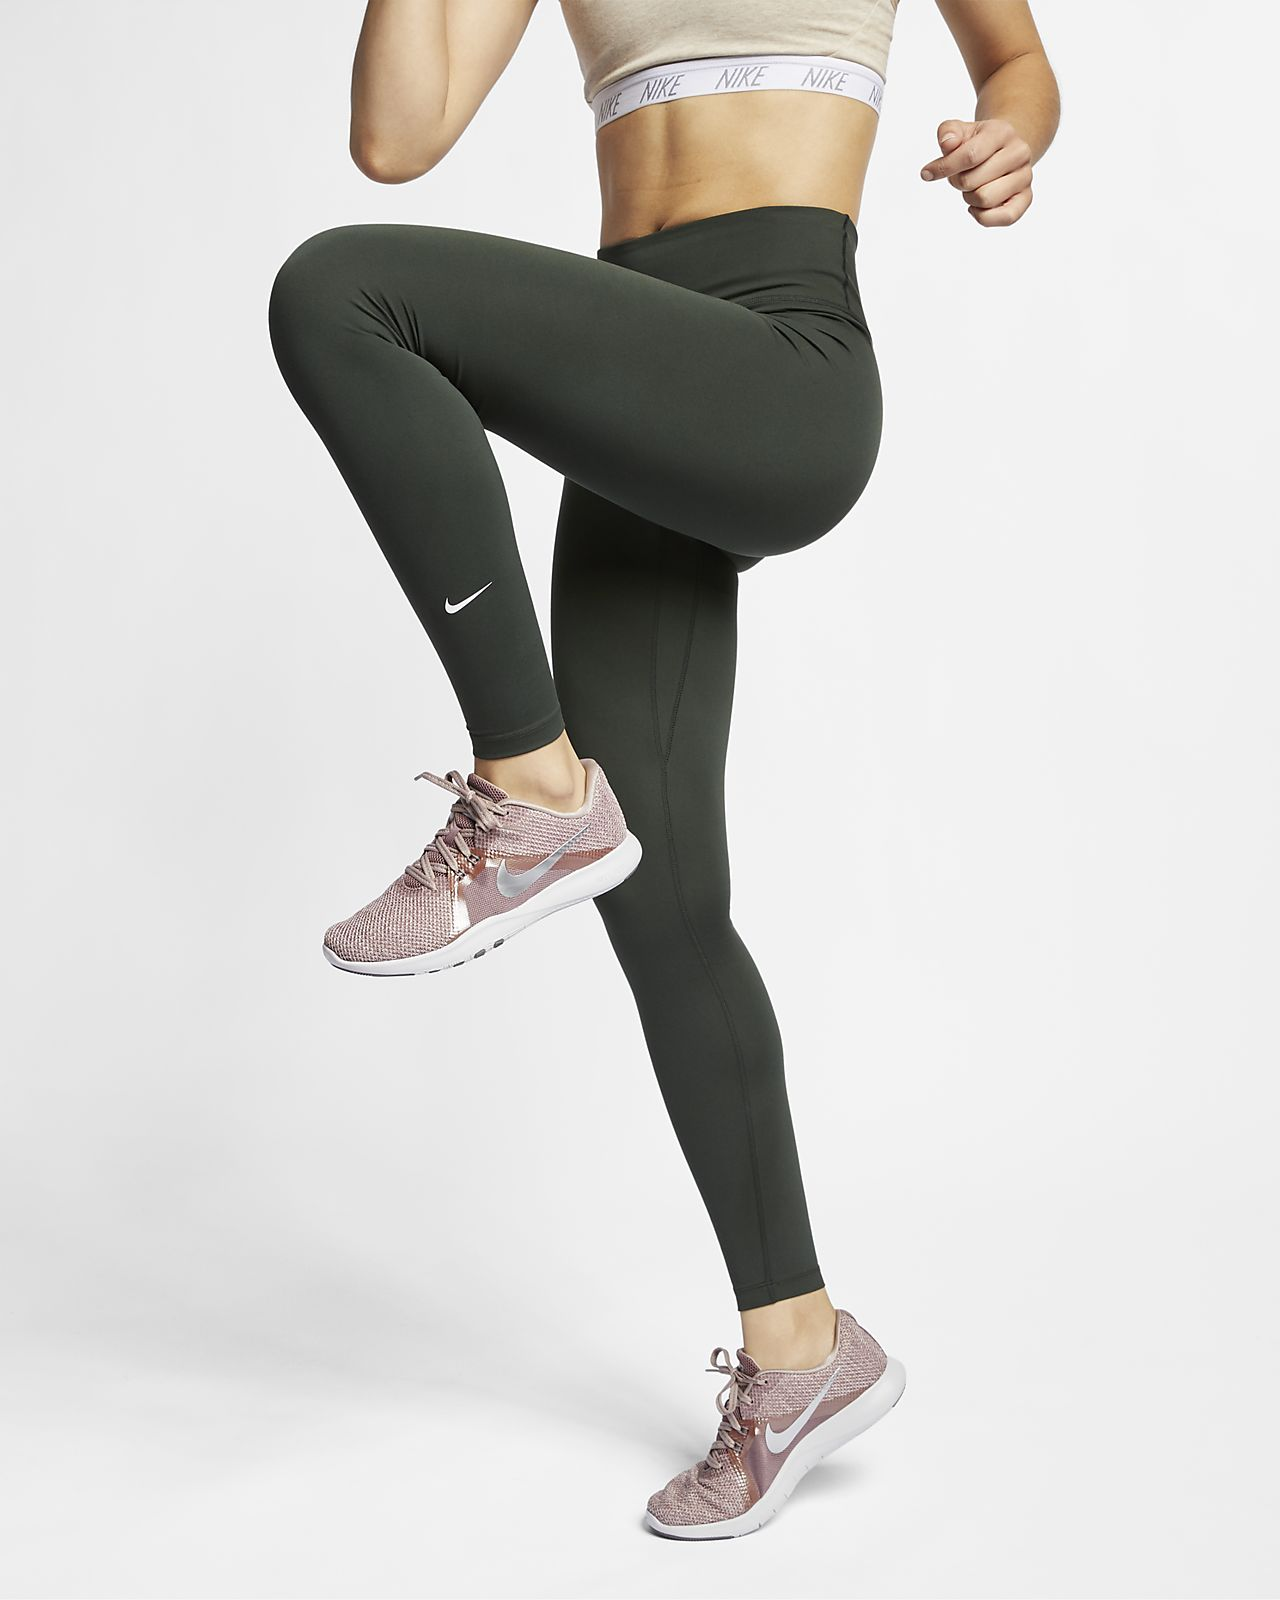 24ba9fc82a4d0 Low Resolution Nike One Women's Tights Nike One Women's Tights